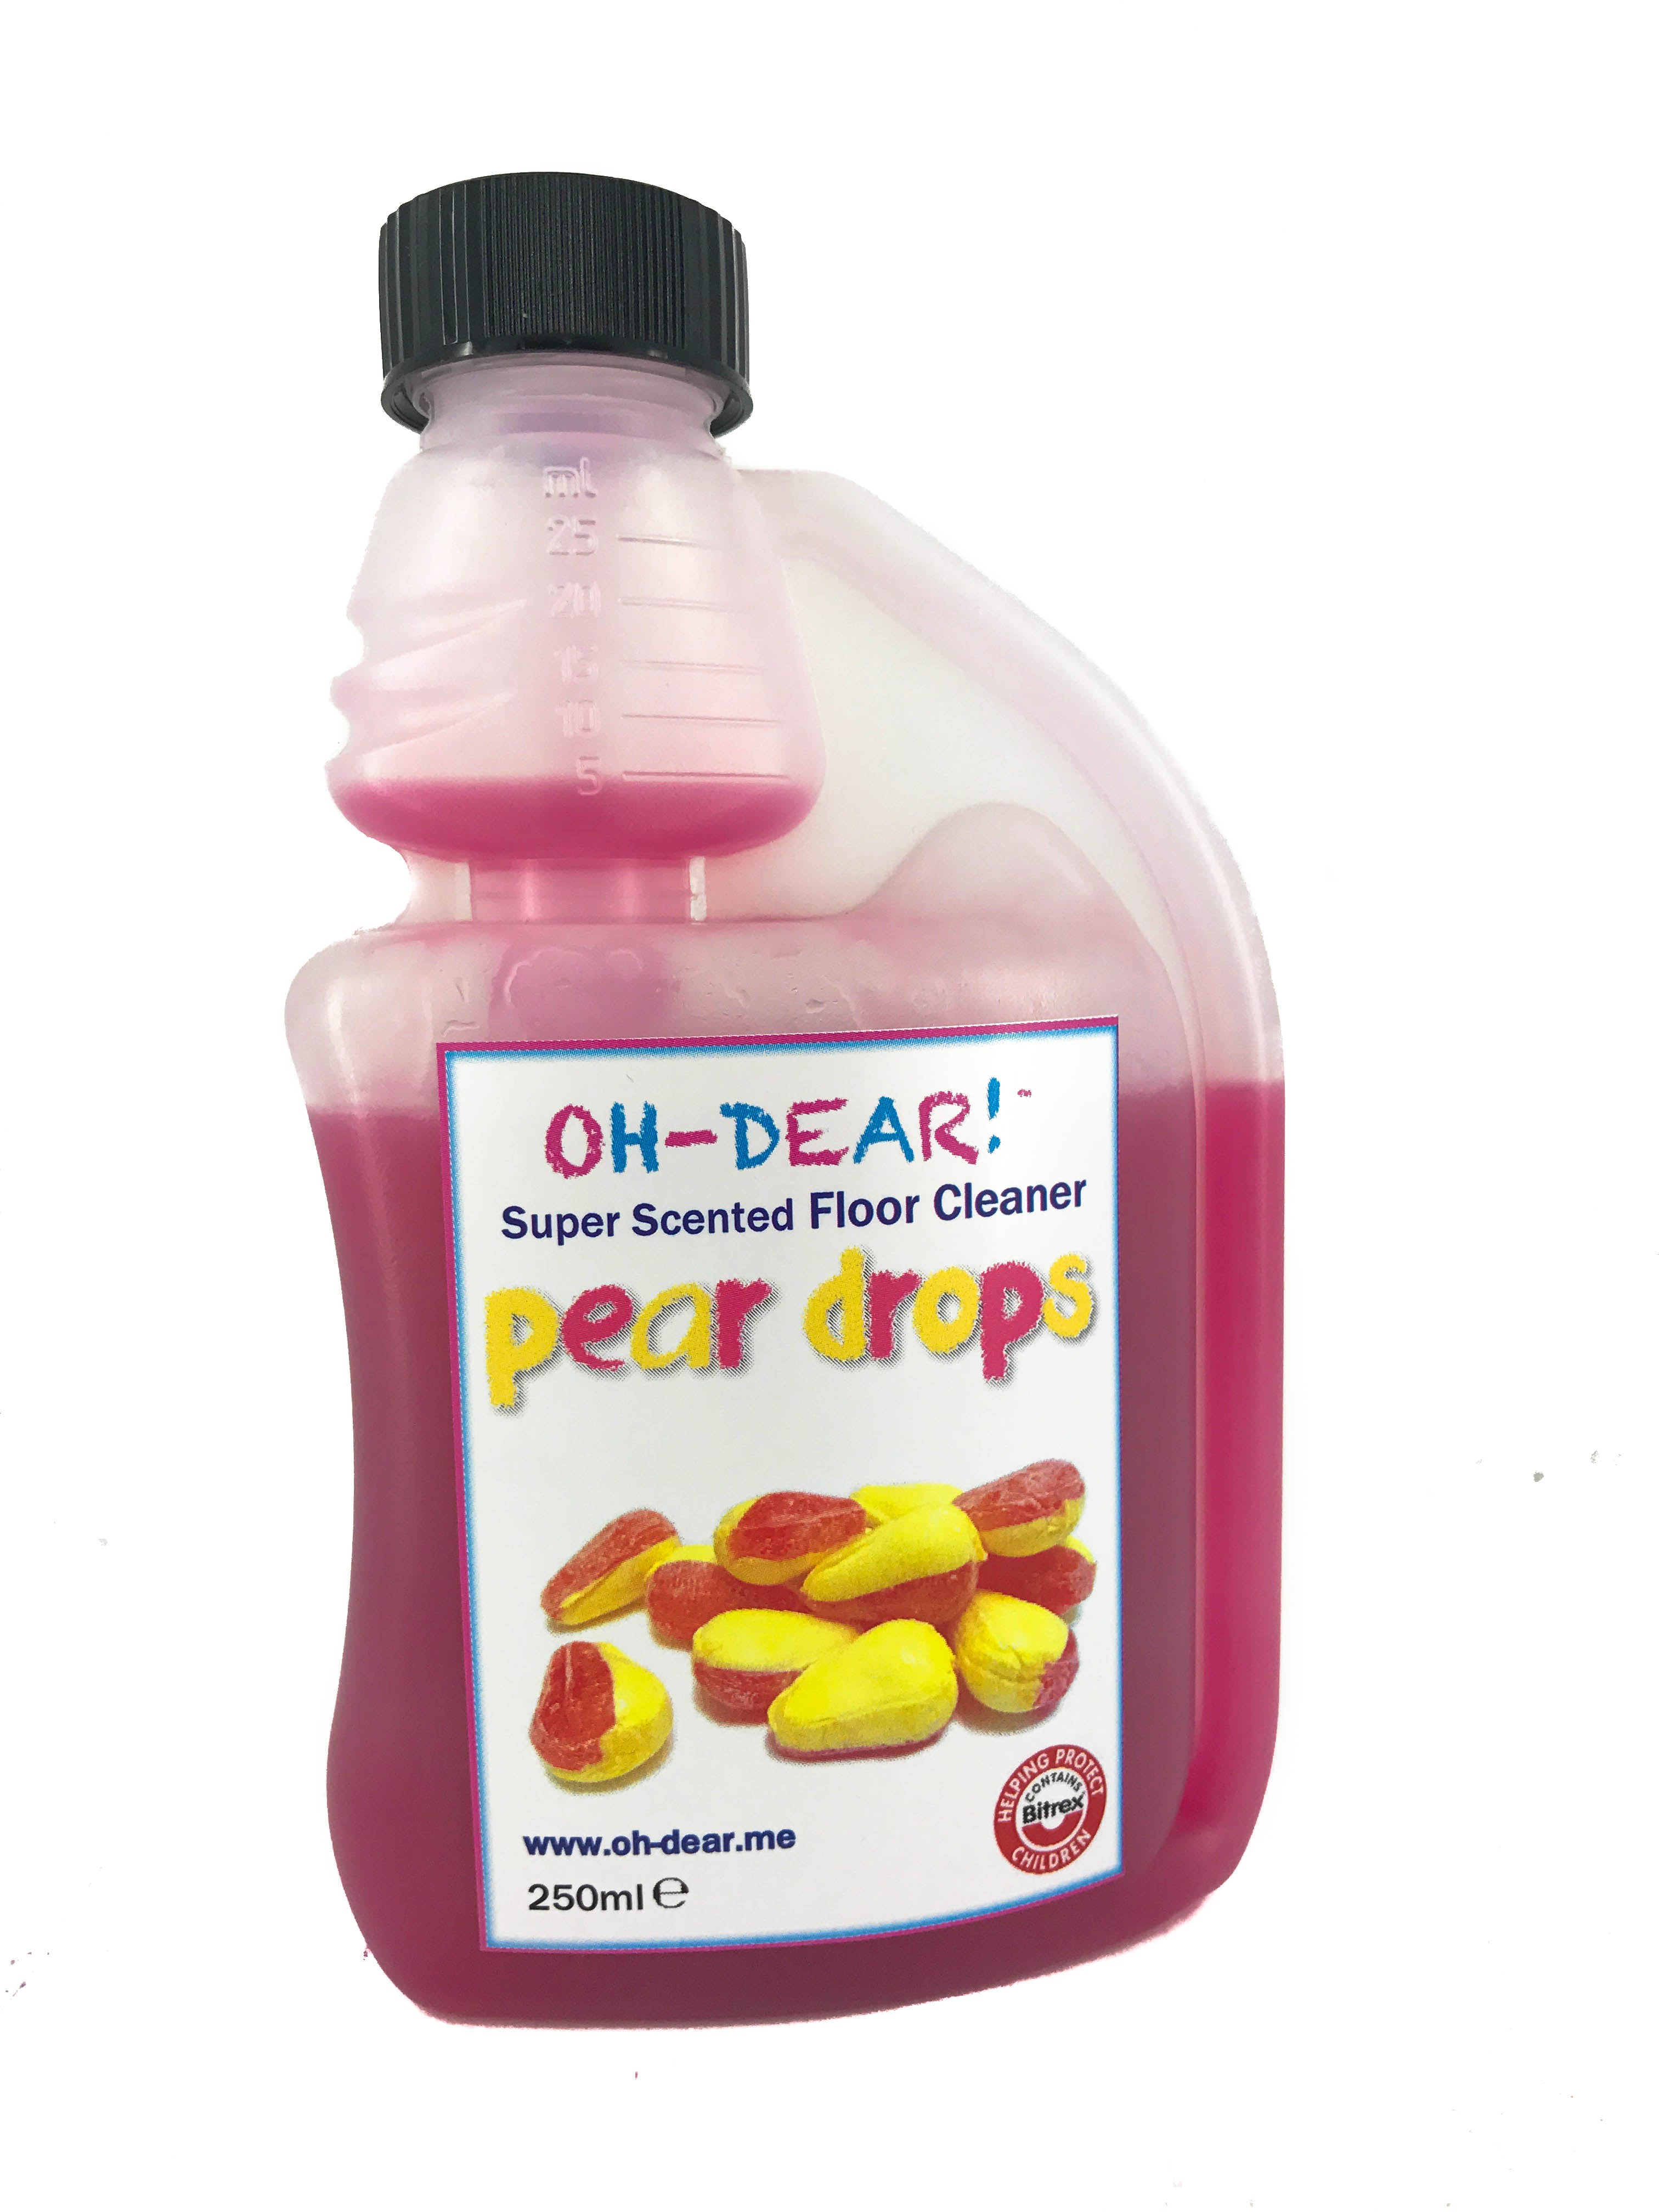 OH-DEAR! Super Scented Floor Cleaner 250ml Concentrated